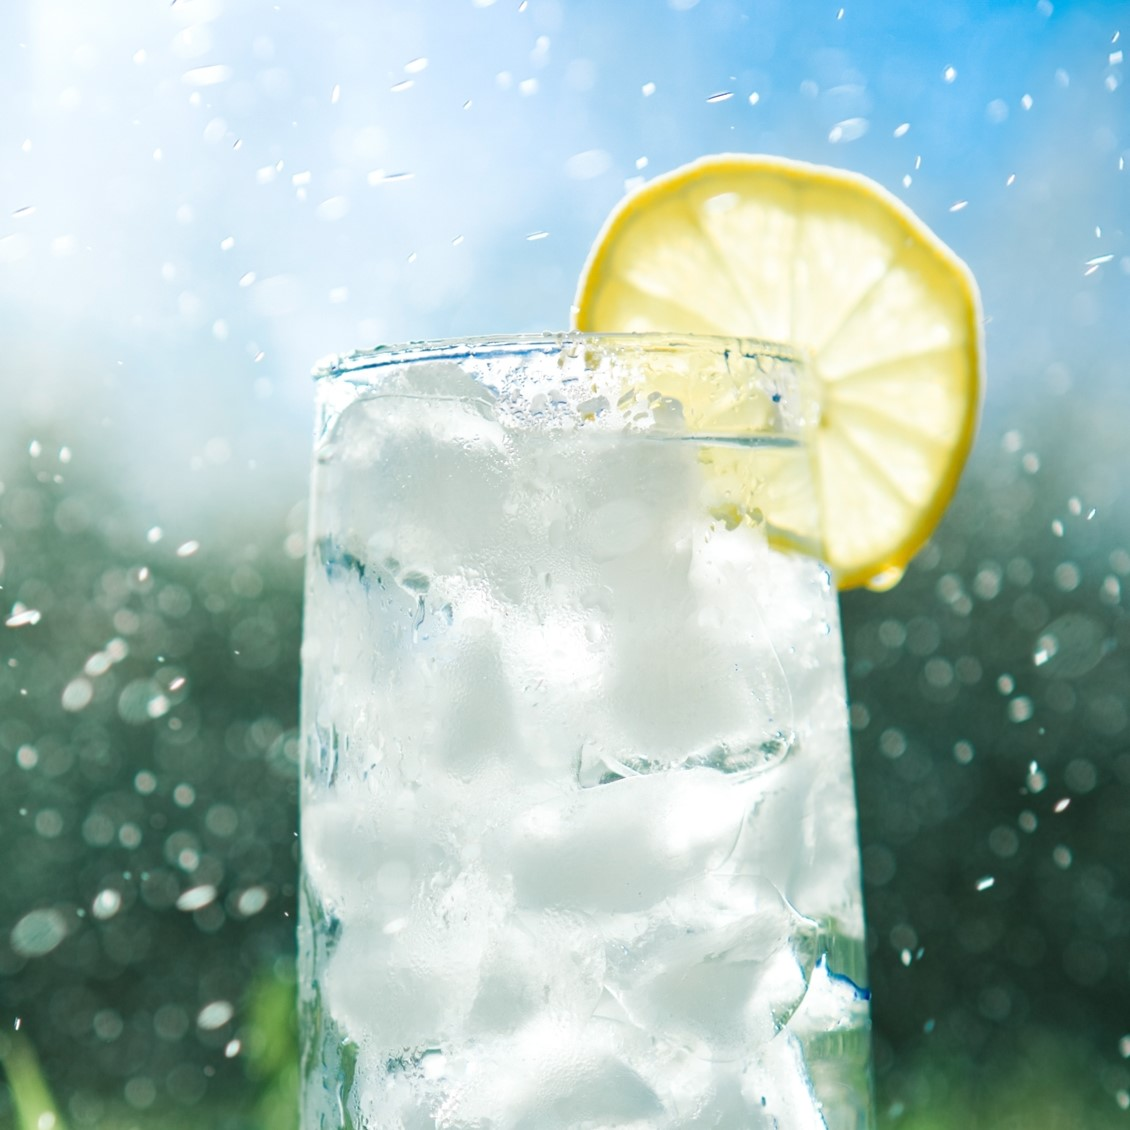 cold glass of lemon water